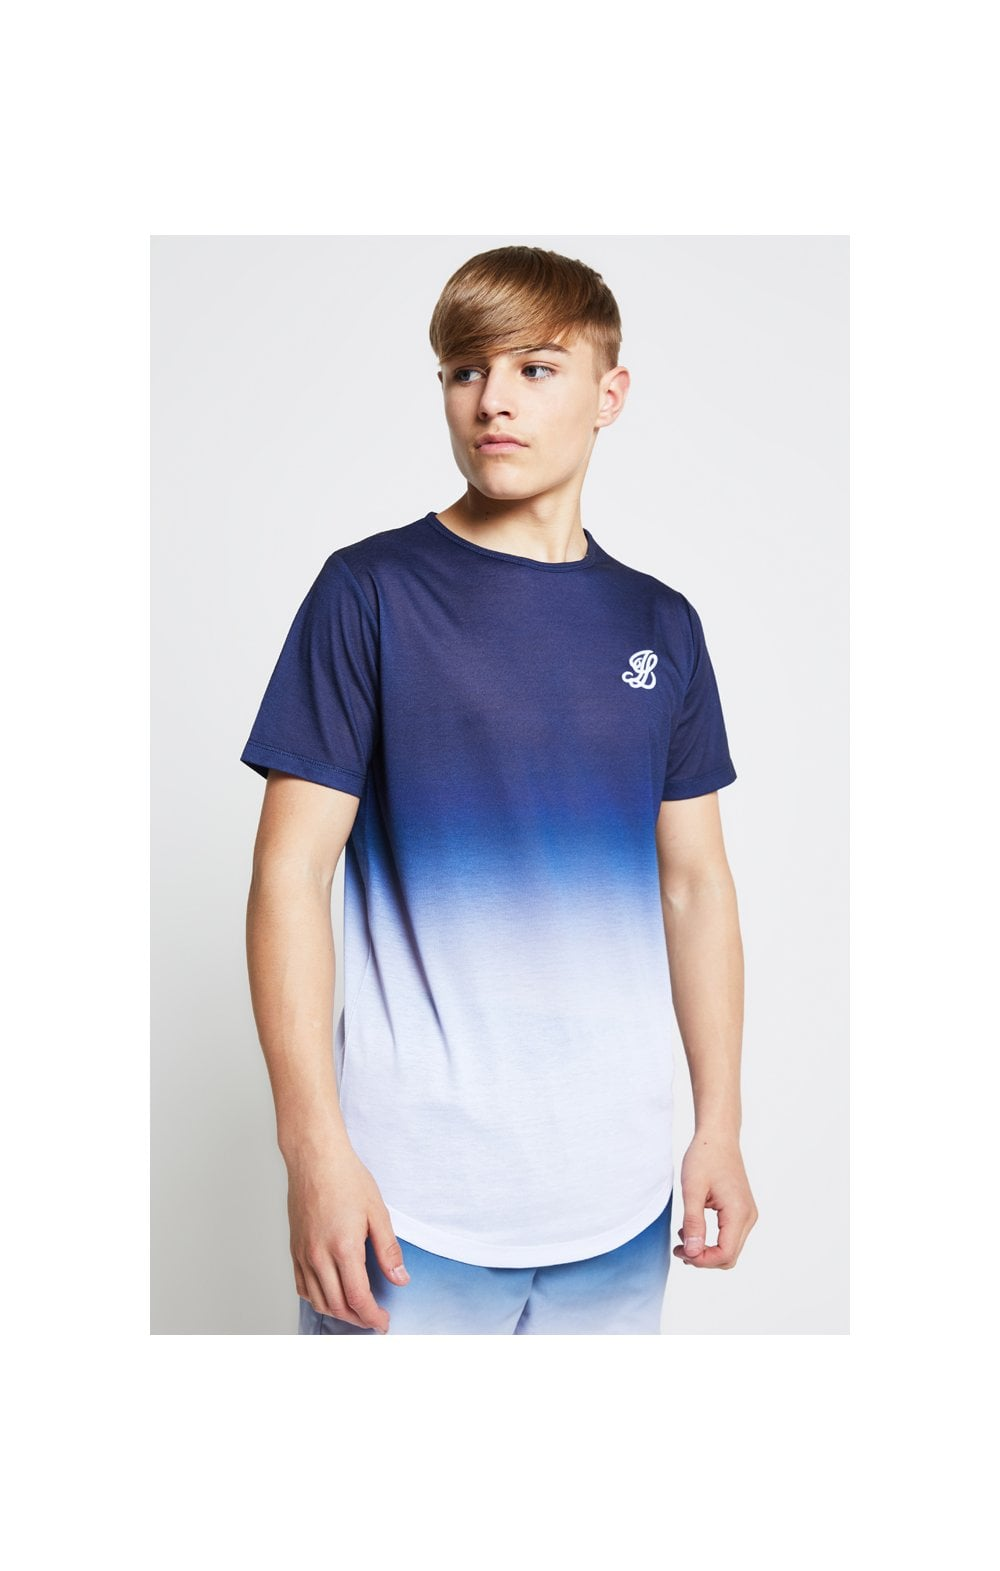 Load image into Gallery viewer, Illusive London Fade Tee - Navy & White (2)